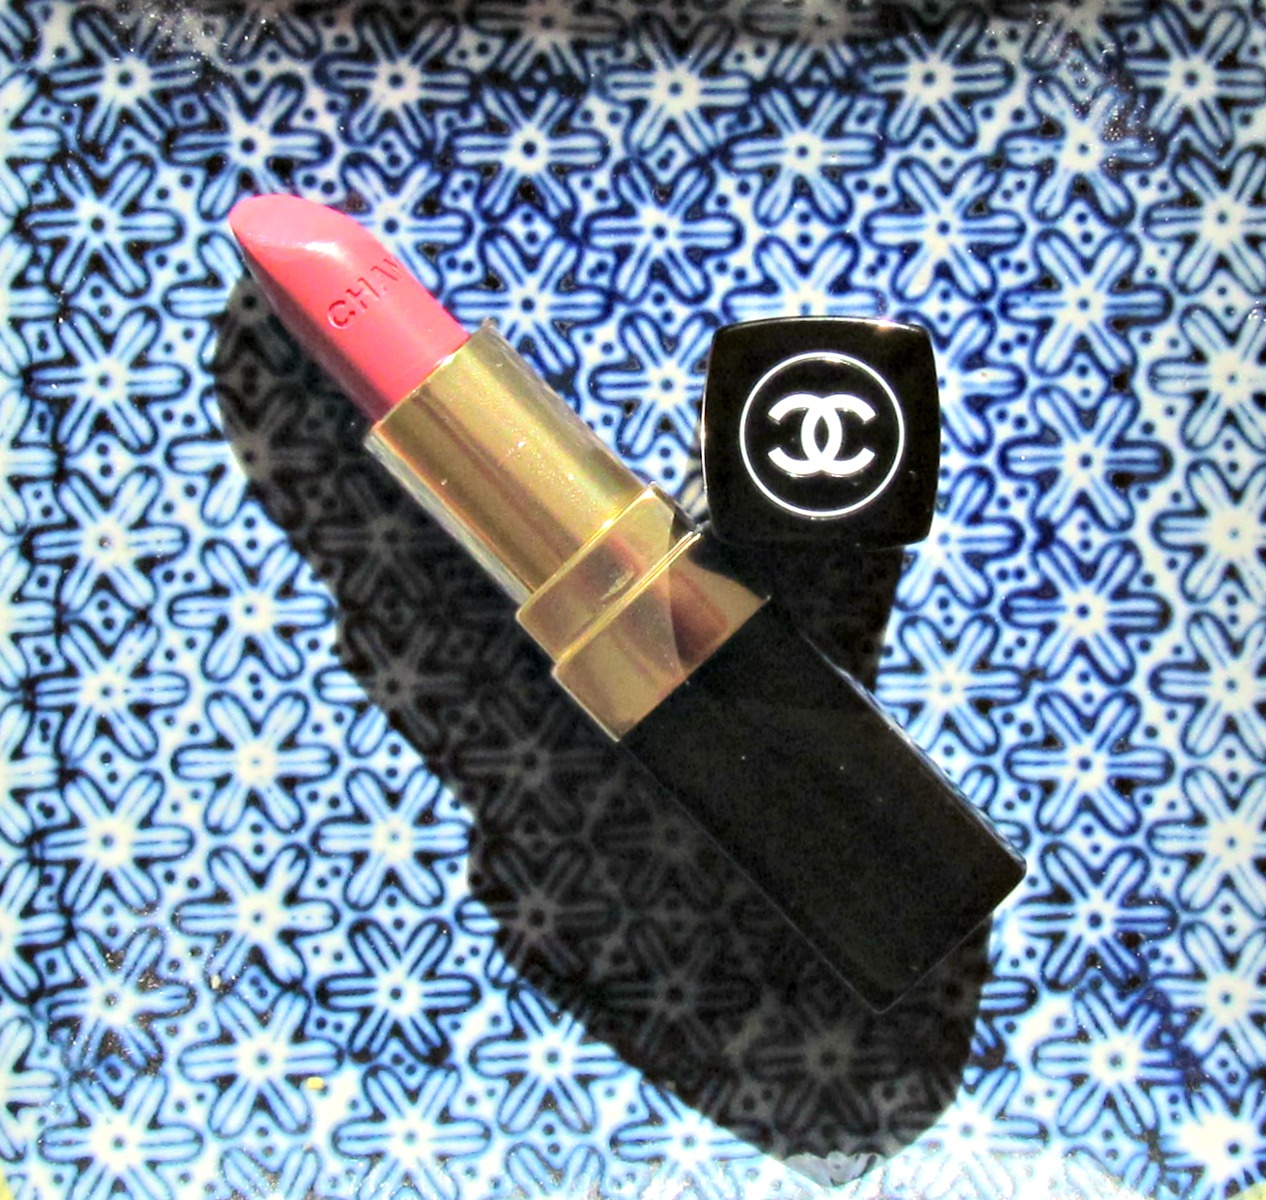 Chanel Rouge Coco lipstick in Edith